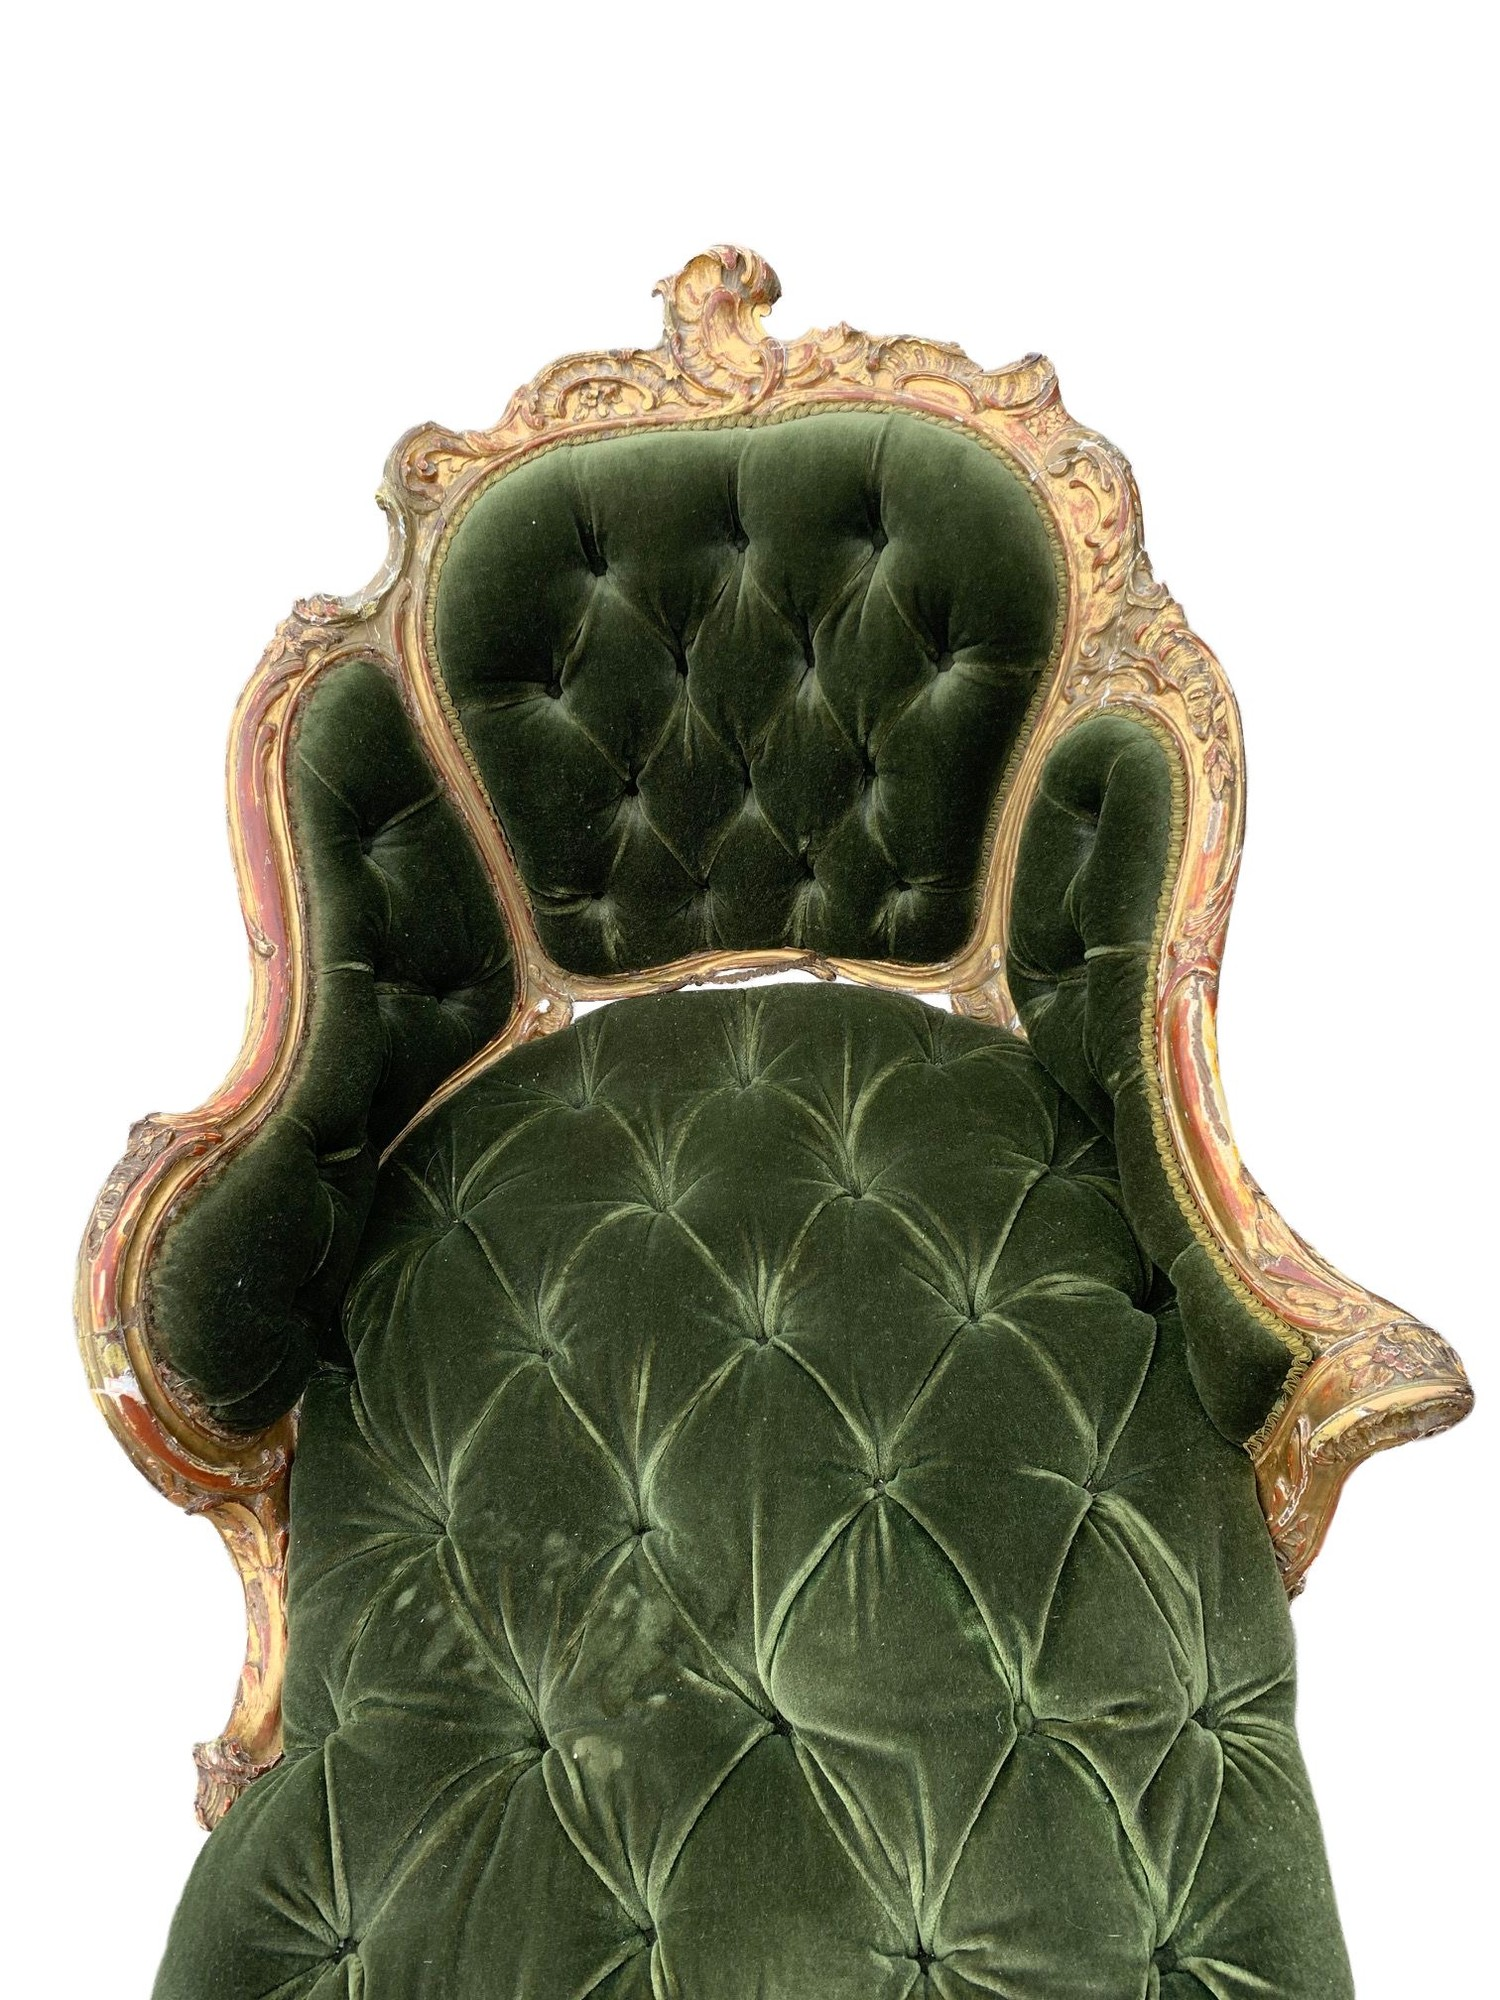 AN 18TH CENTURY FRENCH LOUIS XV ROCOCO CARVED GILTWOOD DUCHESSE DAYBED With button upholstery, frame - Image 6 of 8